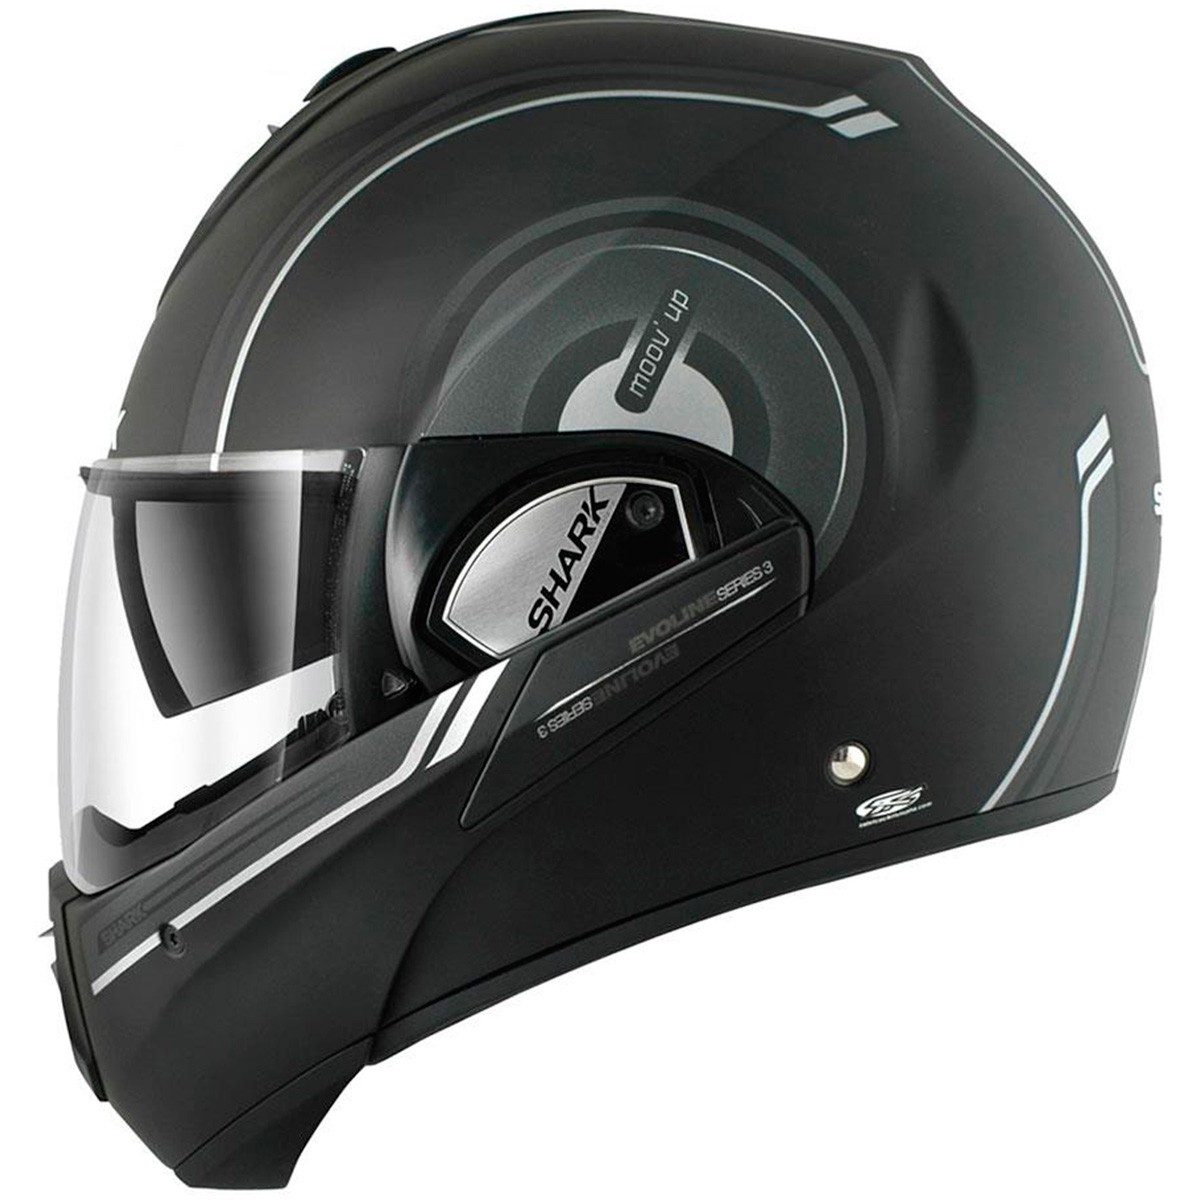 Capacete Shark Evoline Serie 3 Moov Up Matt KAW  - Super Bike - Loja Oficial Alpinestars